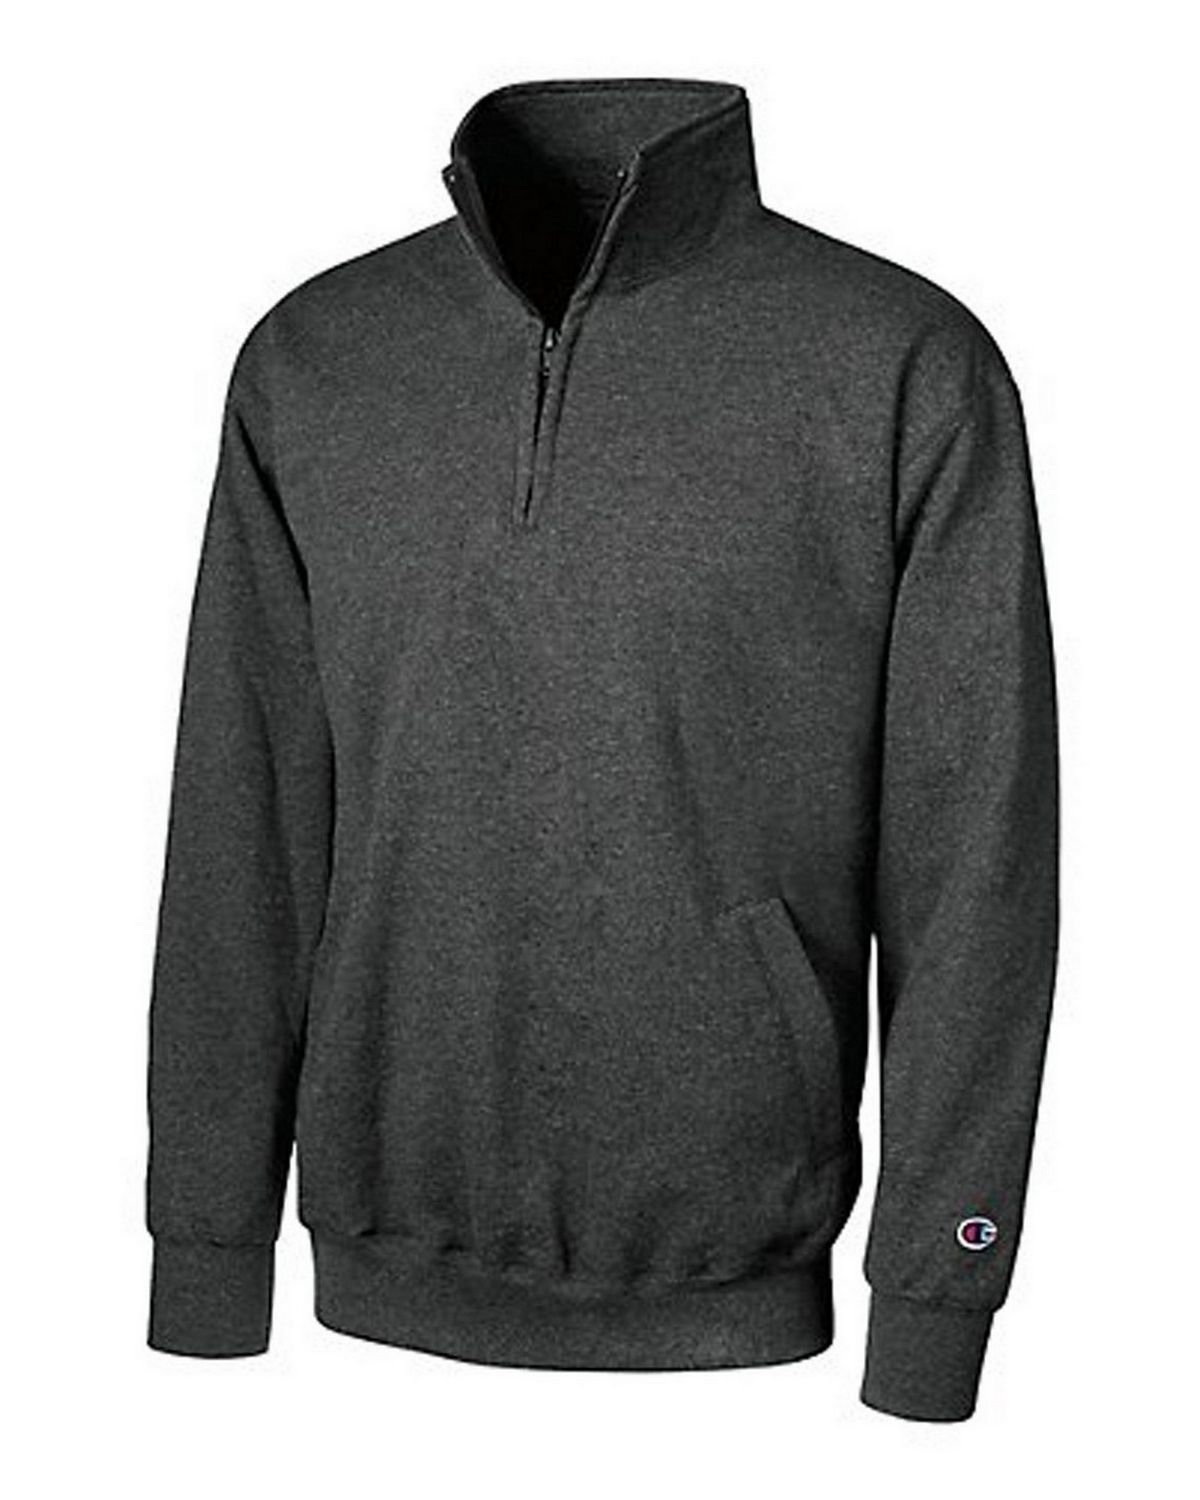 Champion S400 Eco Fleece 1/4 Zip - Black - XL S400